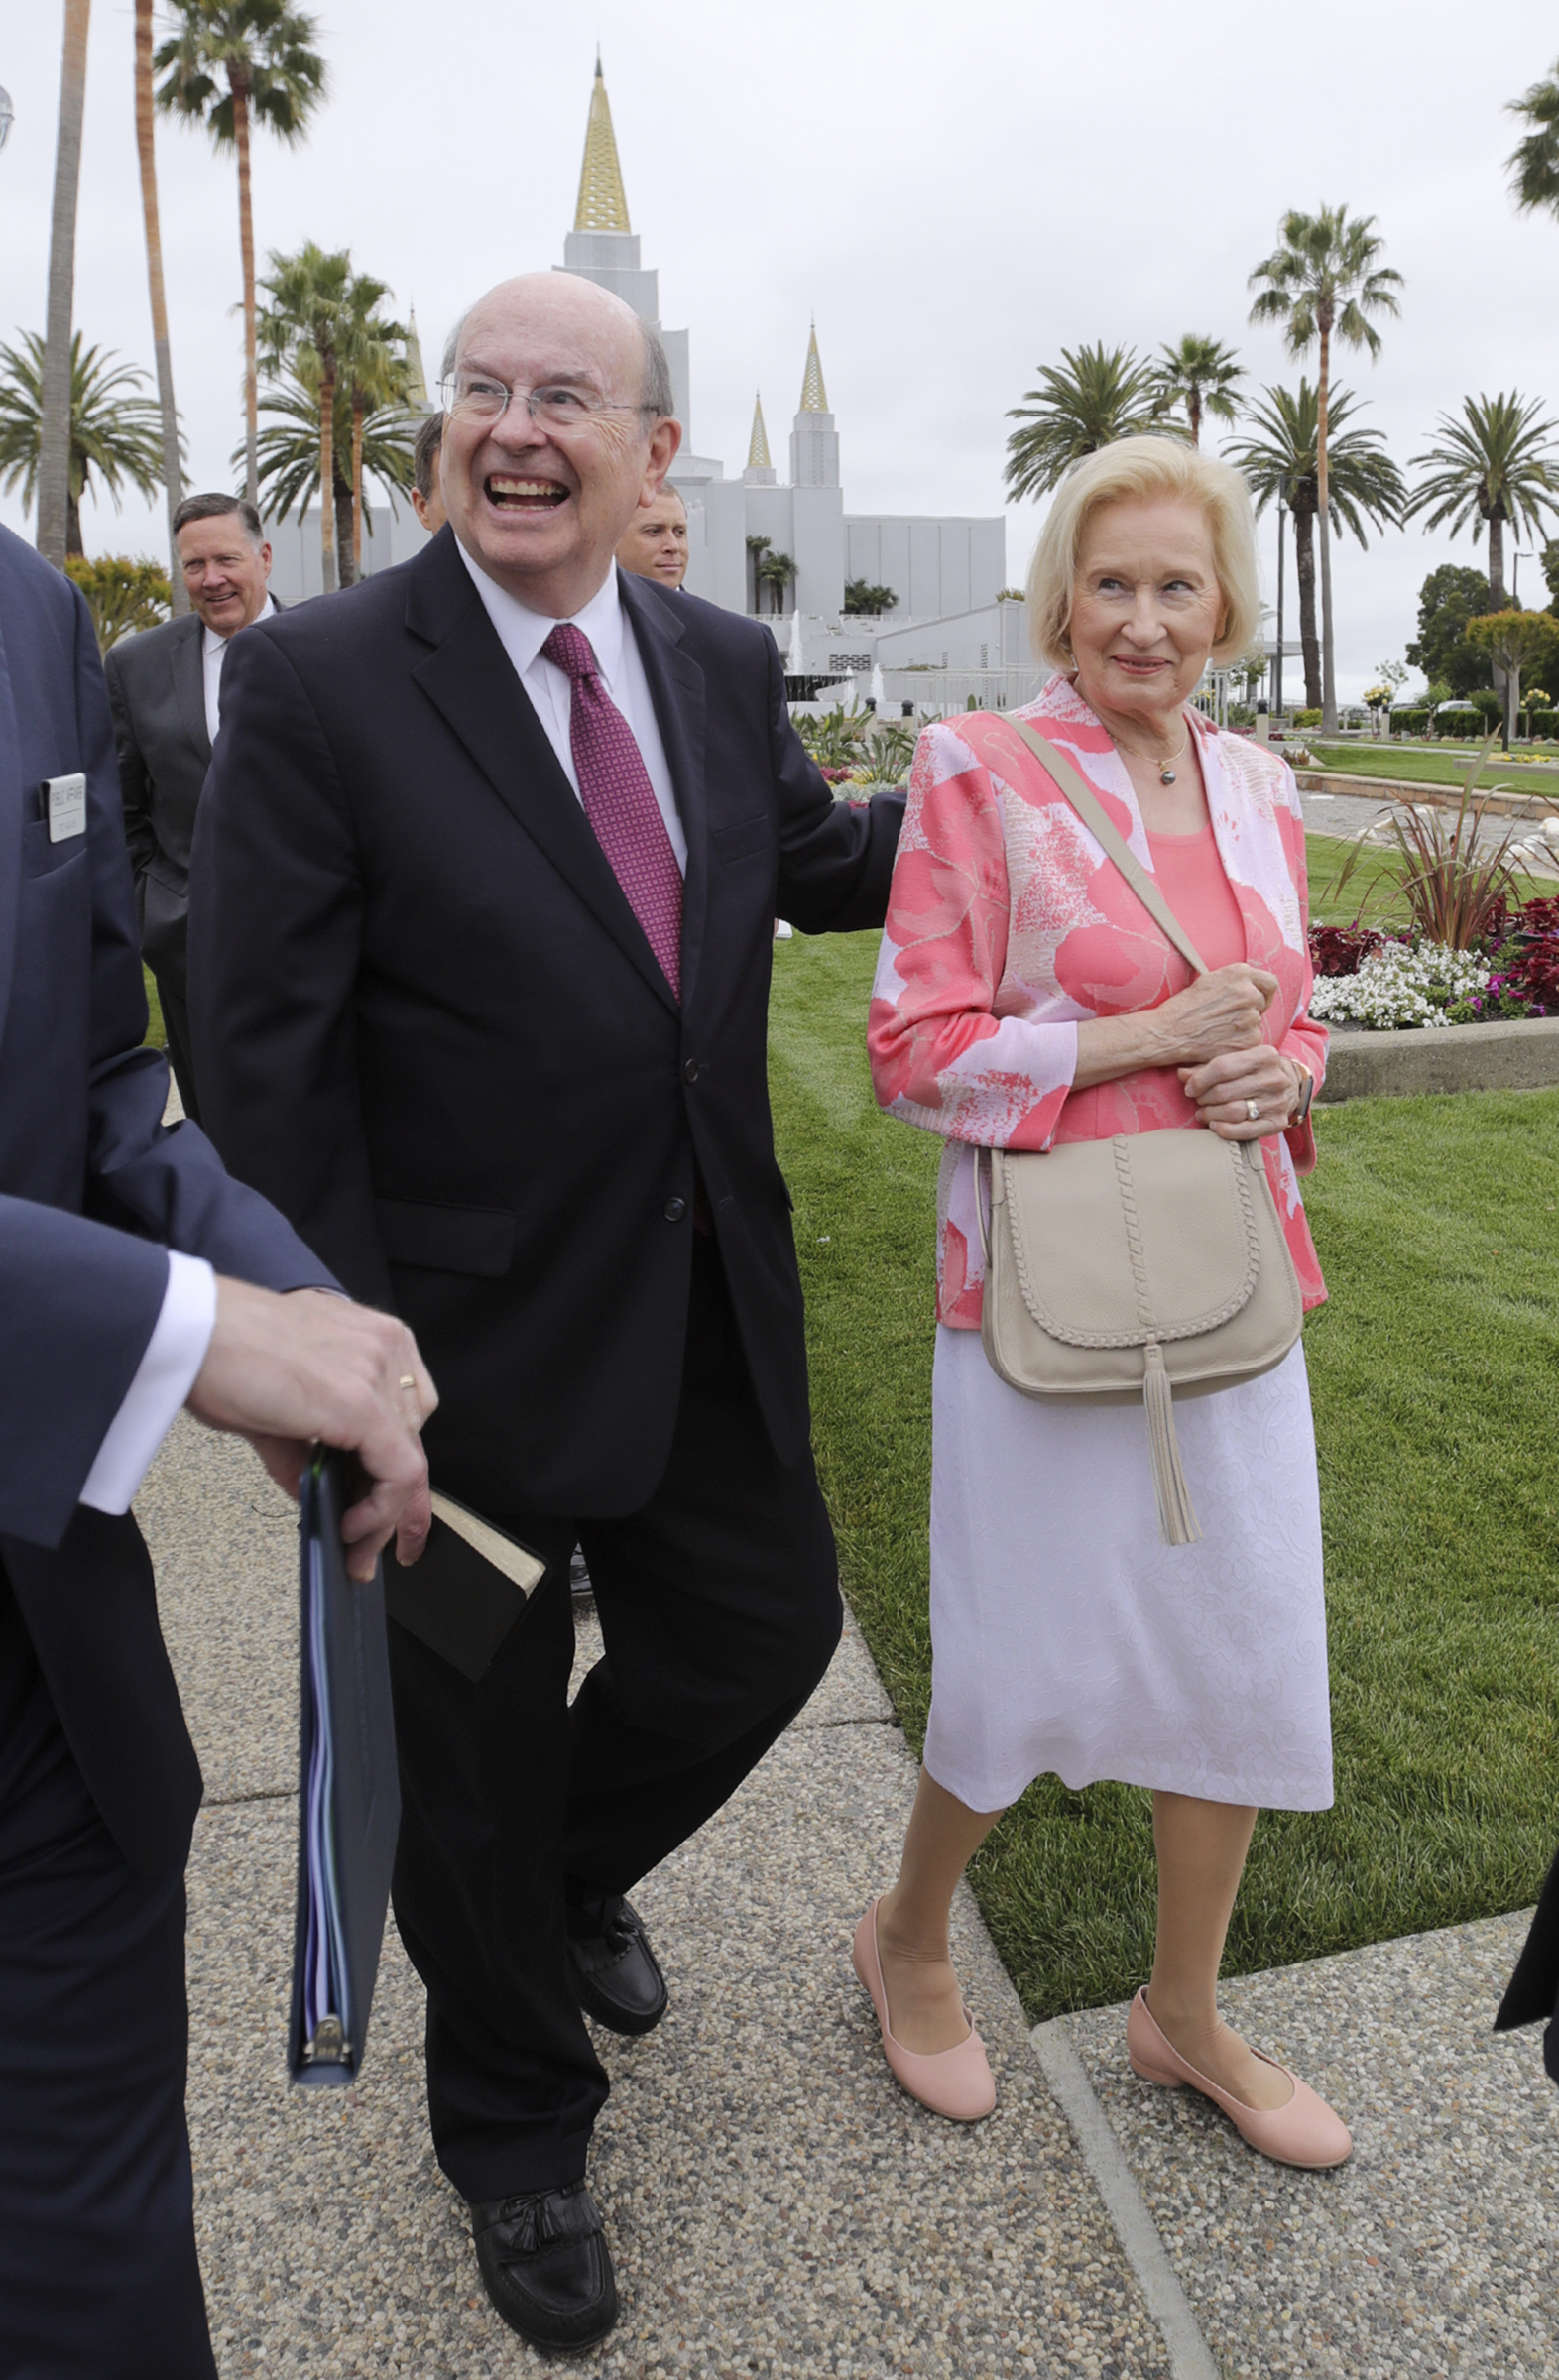 Elder Quentin L. Cook, of the Quorum of the Twelve Apostles, and his wife, Sister Mary G. Cook, walk the temple grounds after finishing a tour of the newly renovated Oakland California Temple, of The Church of Jesus Christ of Latter-day Saints, in Oakland, Calif., on Monday, May 6, 2019.